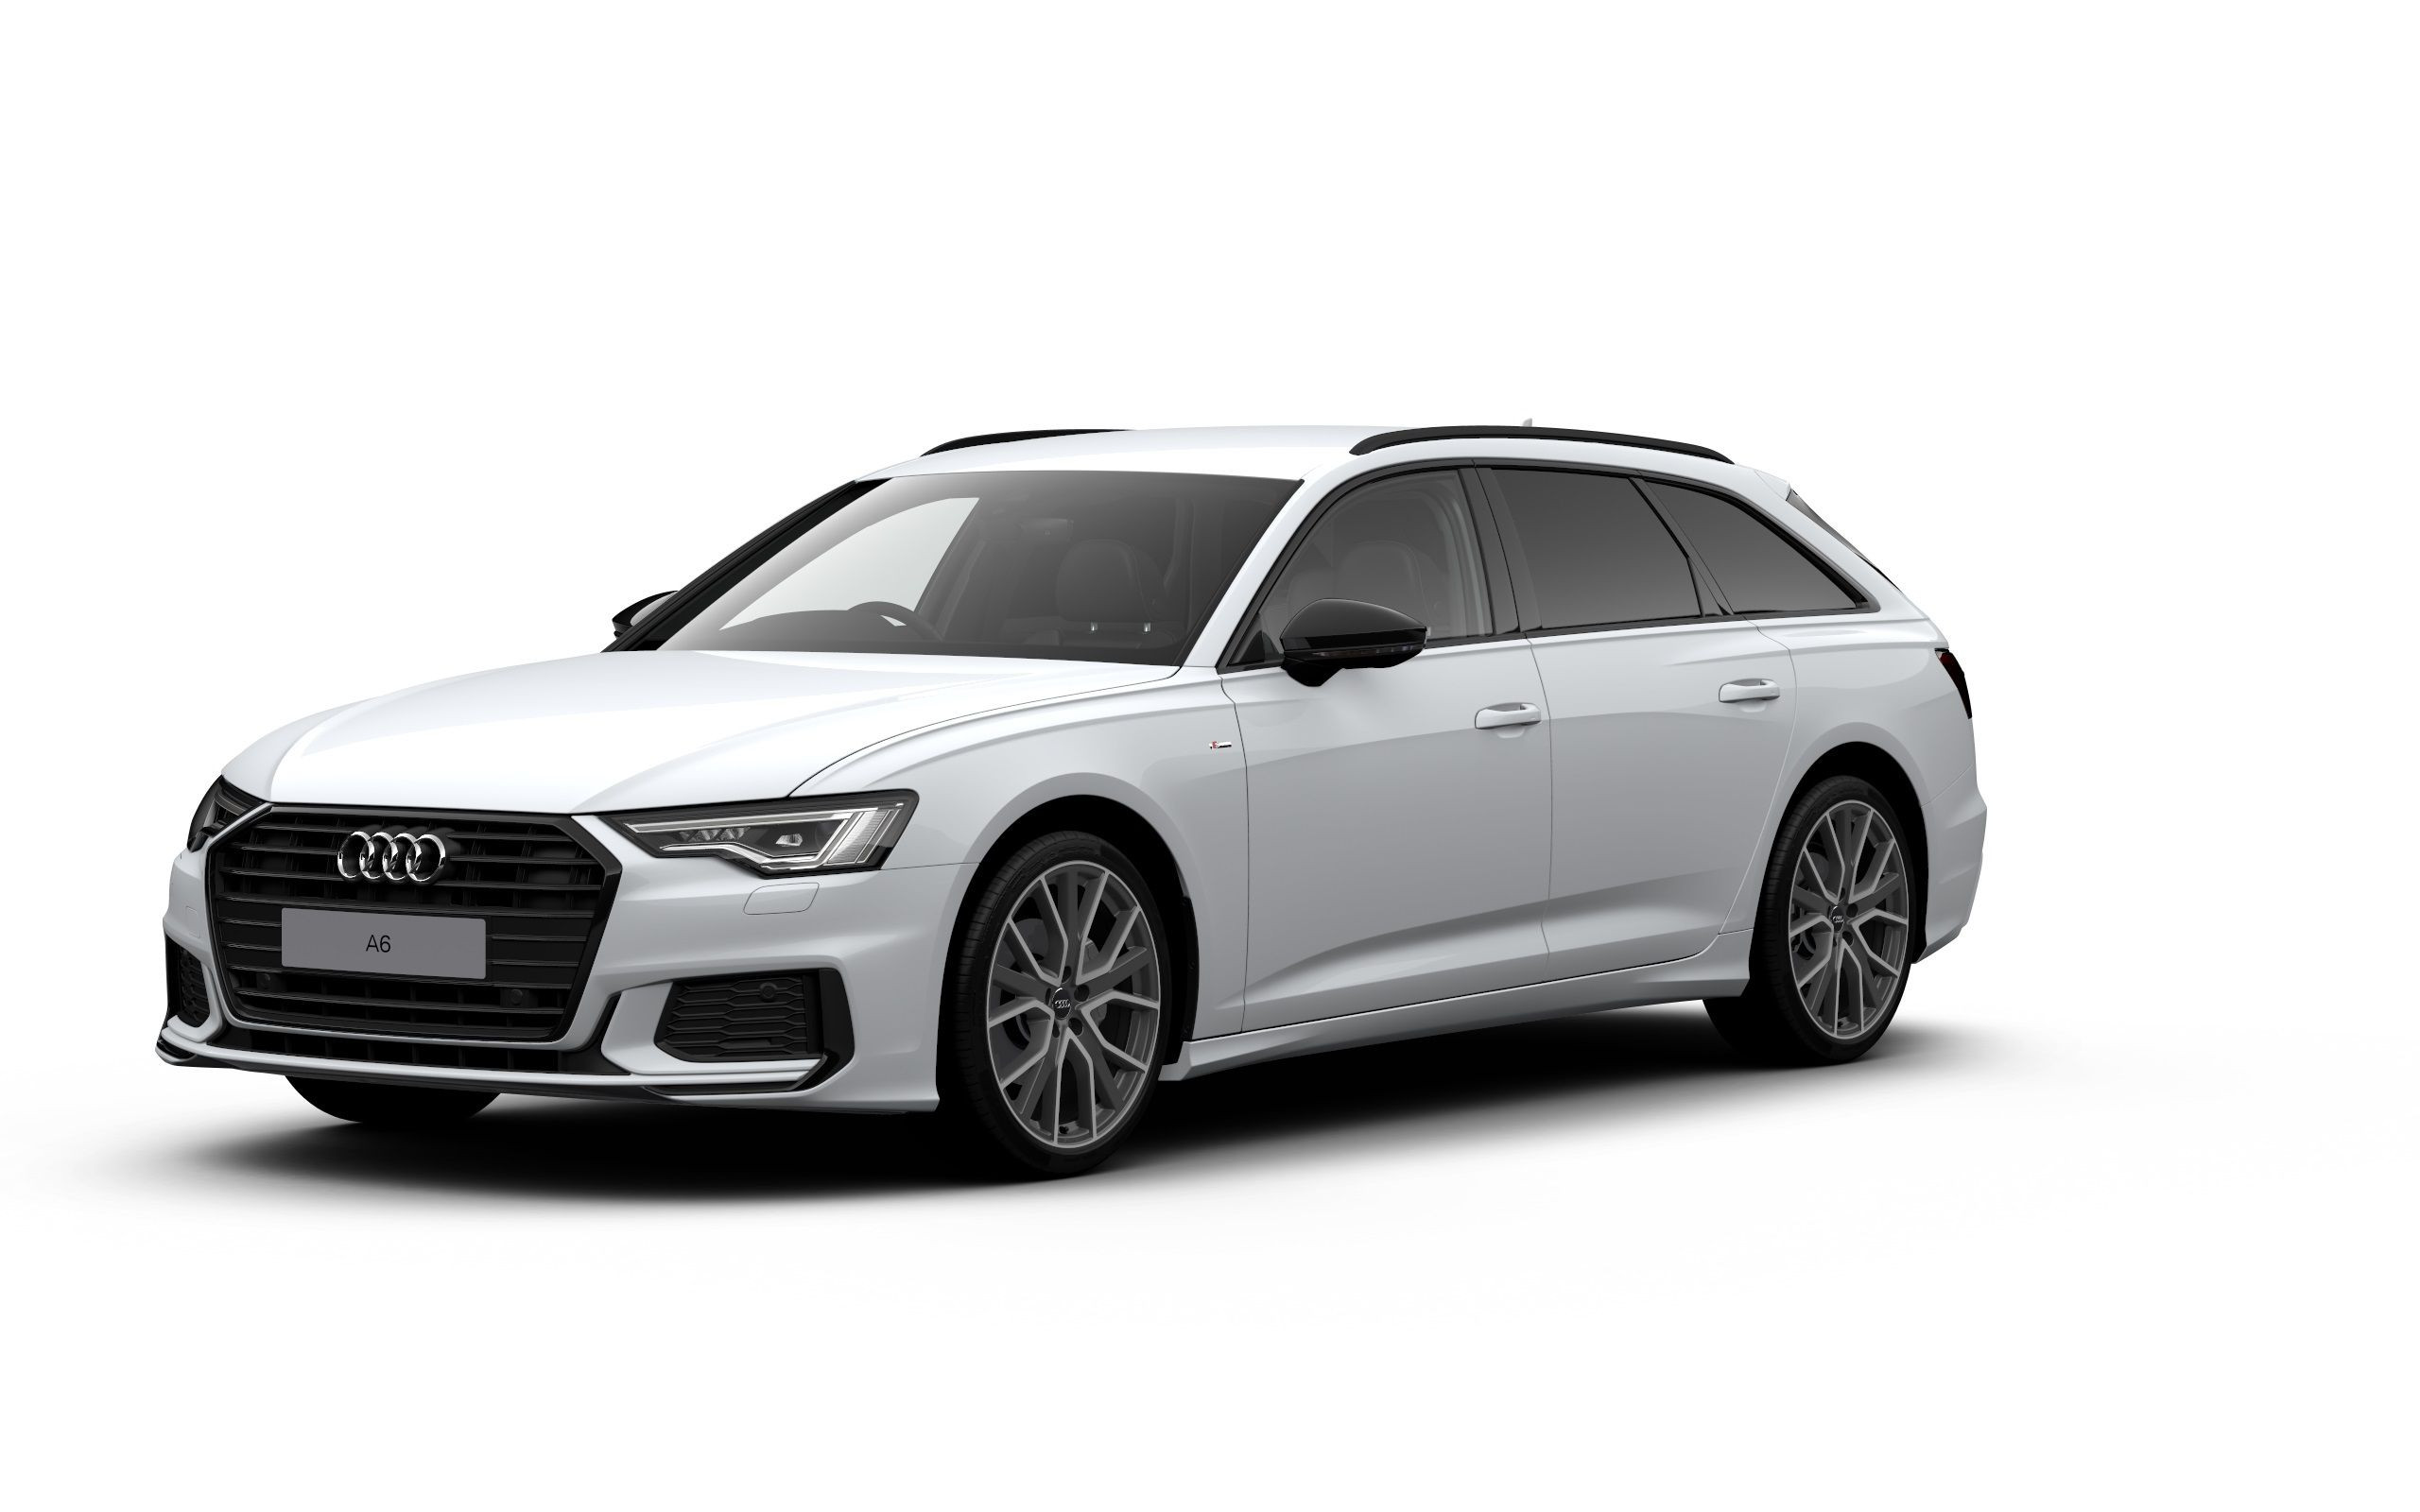 Front view of Audi Black edition A6 avant.